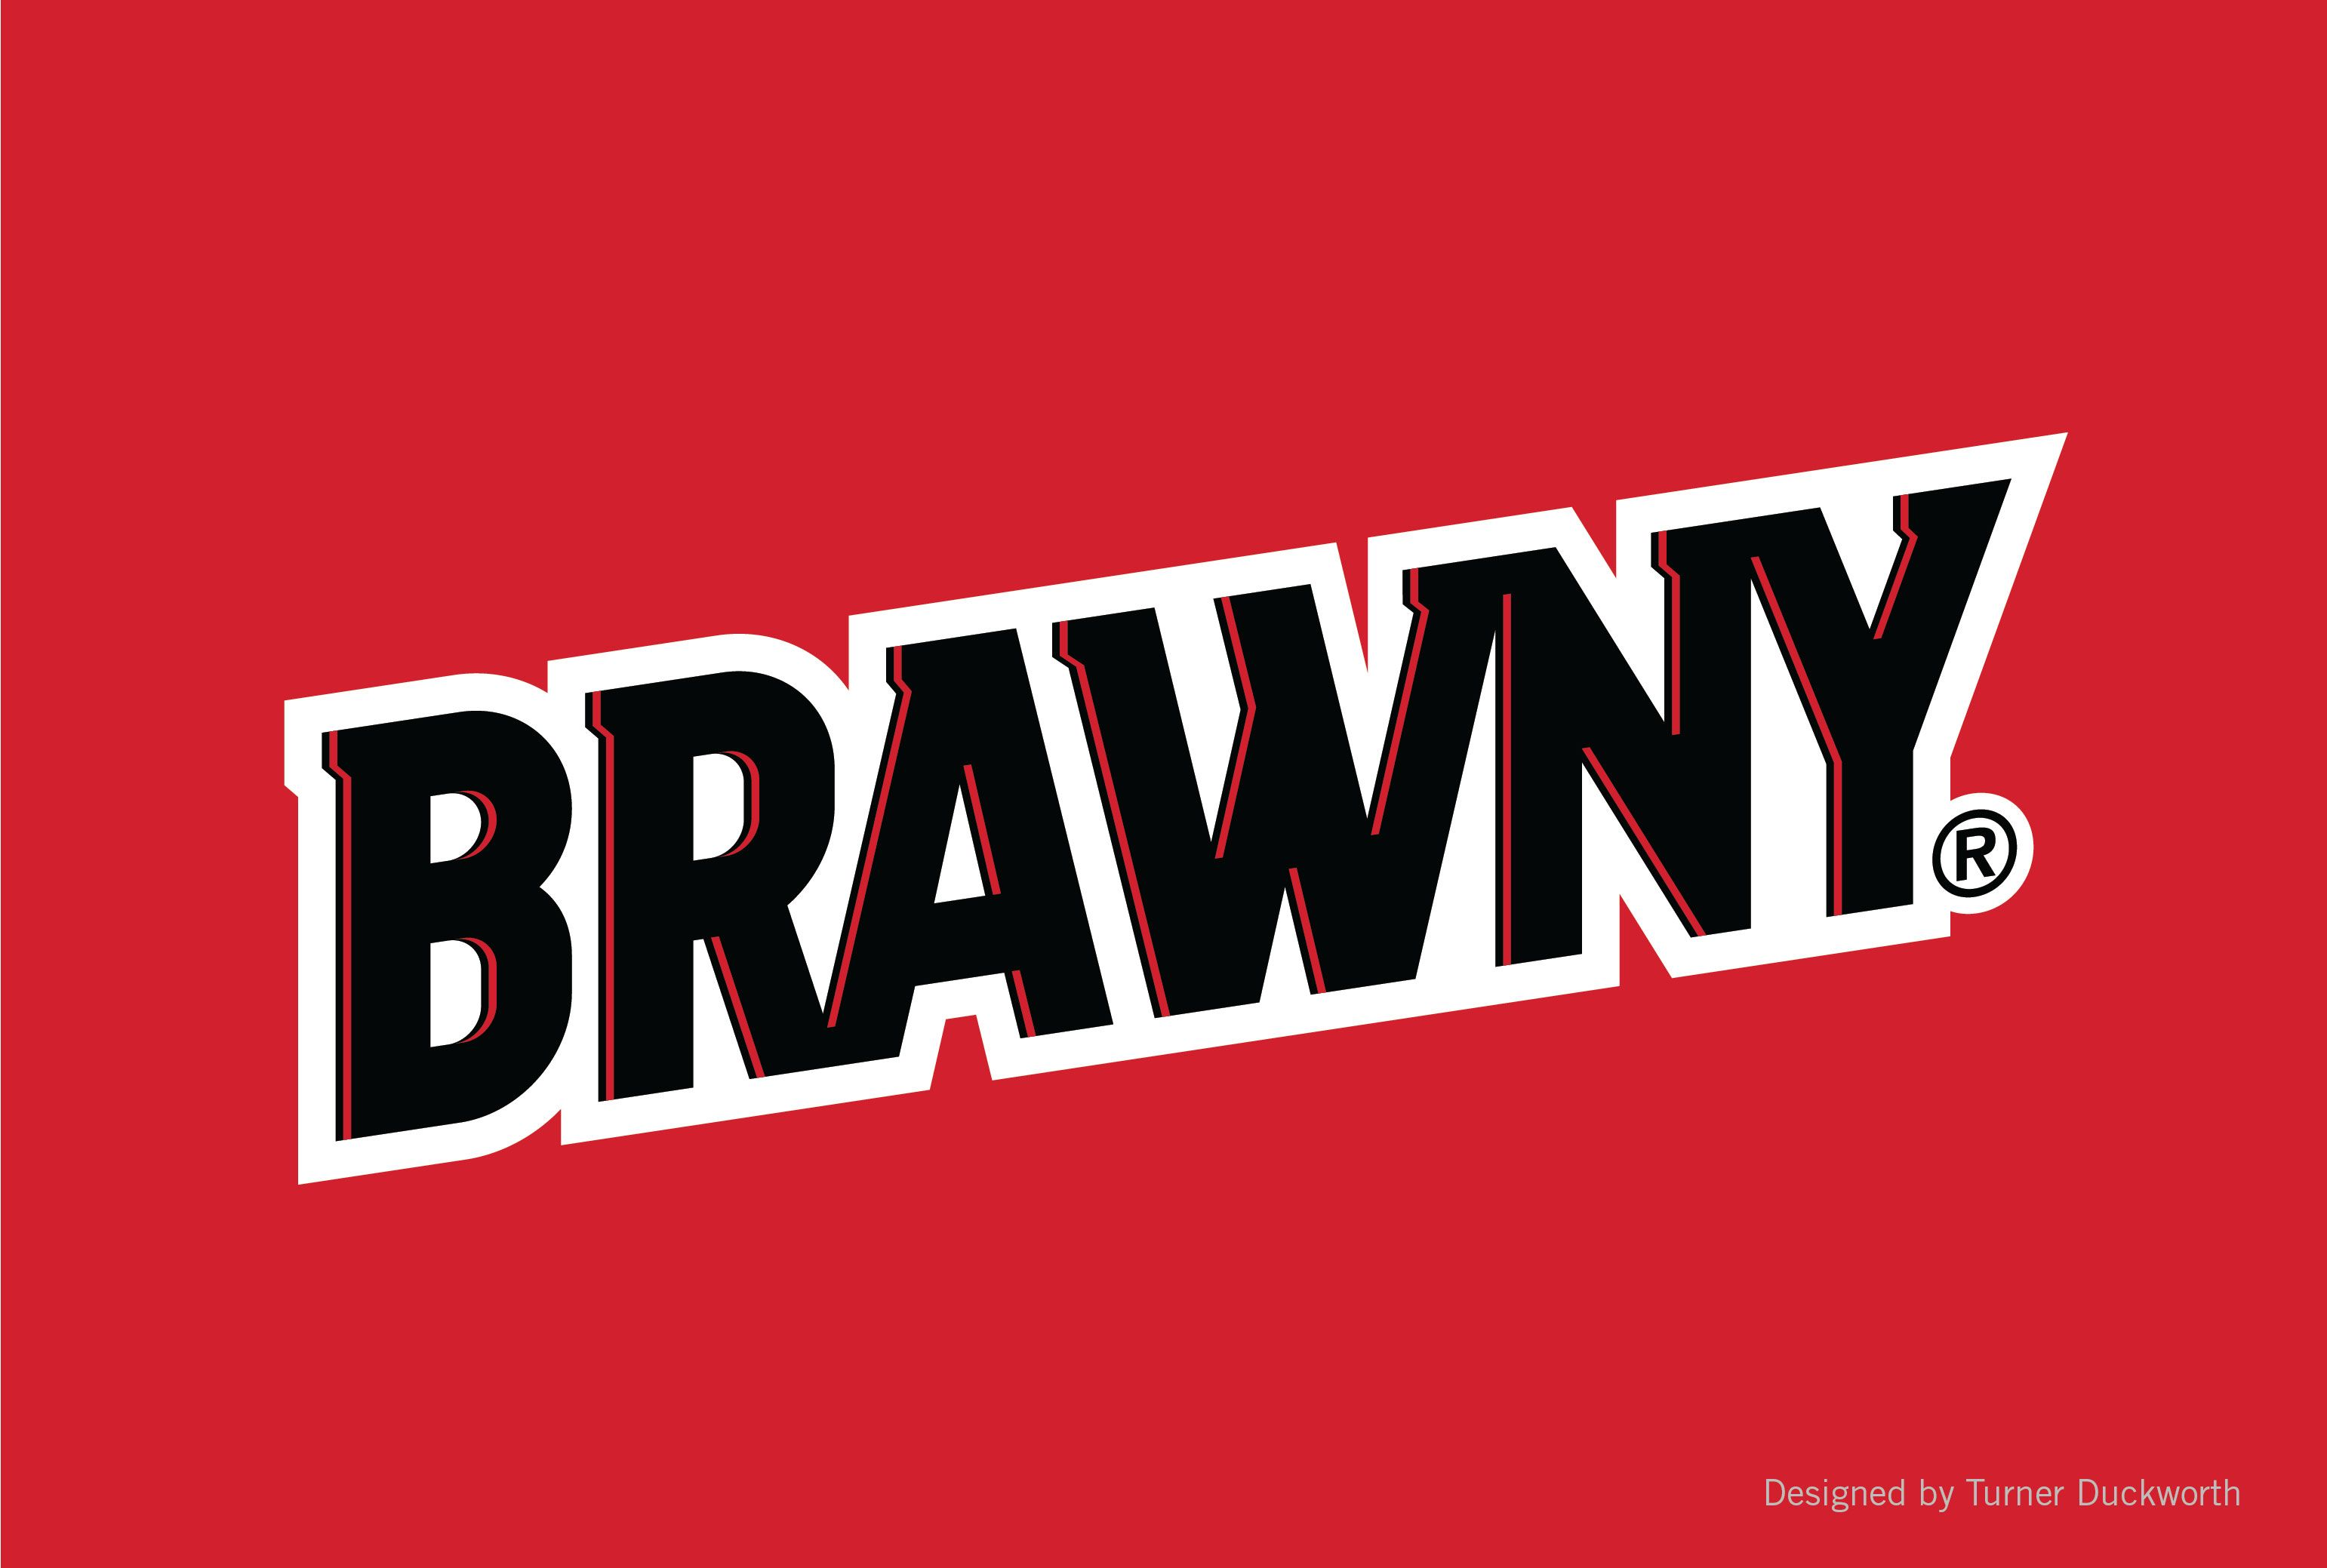 Brawny logo. Designed by Turner Duckworth..